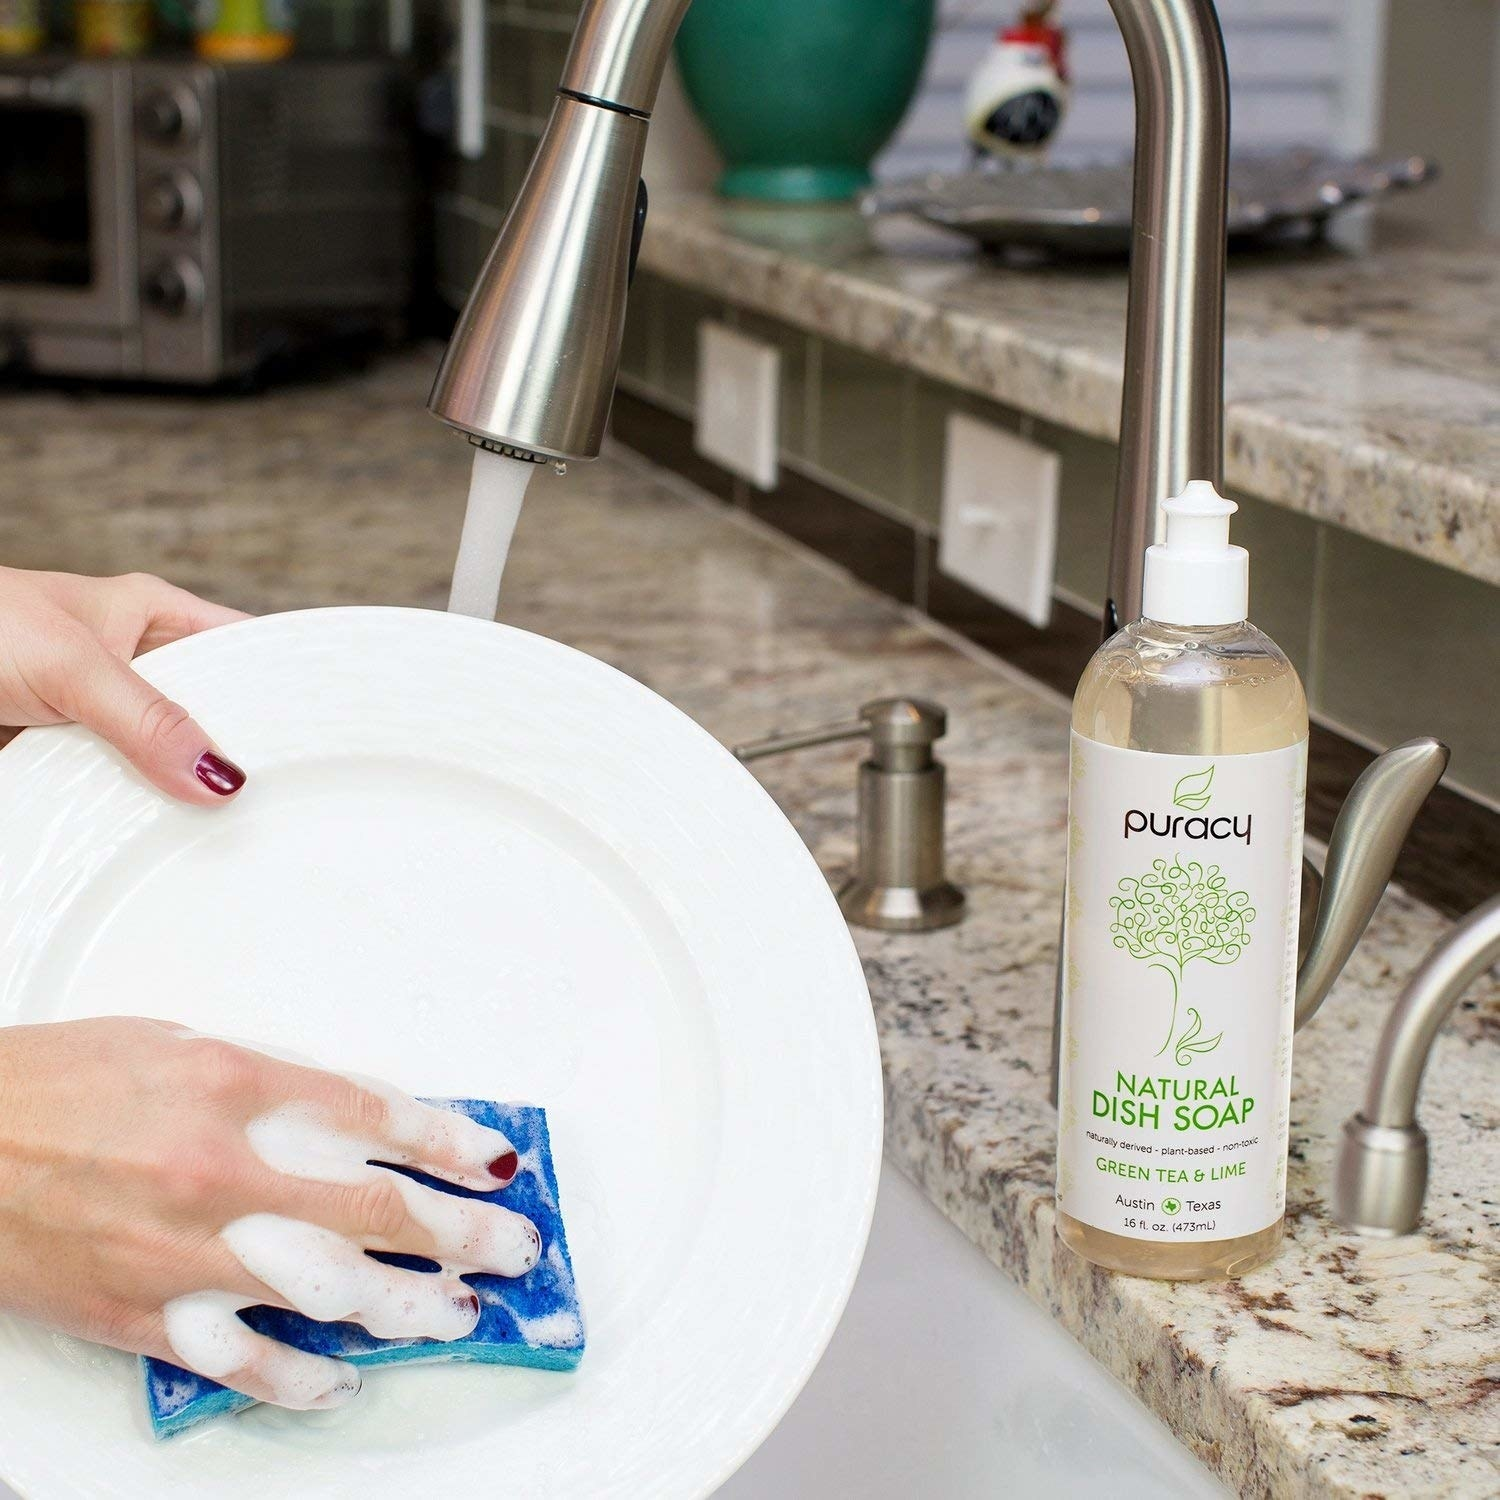 Model washing plate with Puracy natural dish soap on counter